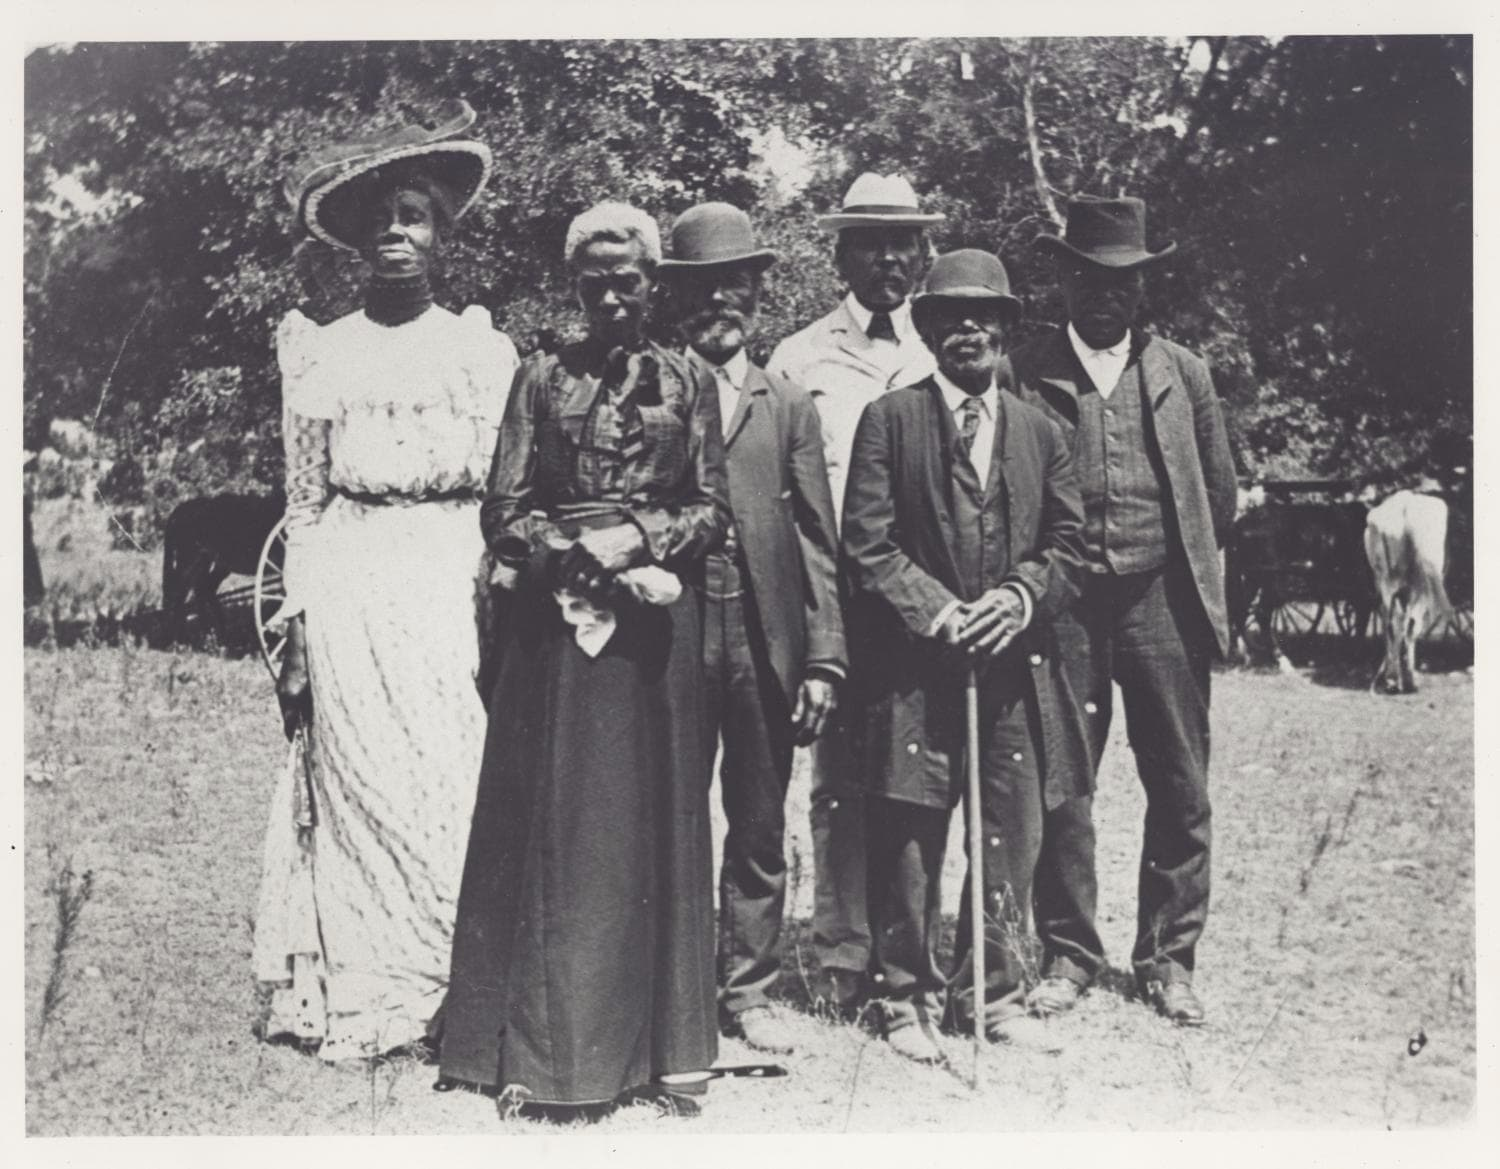 Juneteenth day celebration in Texas, June 19, 1900